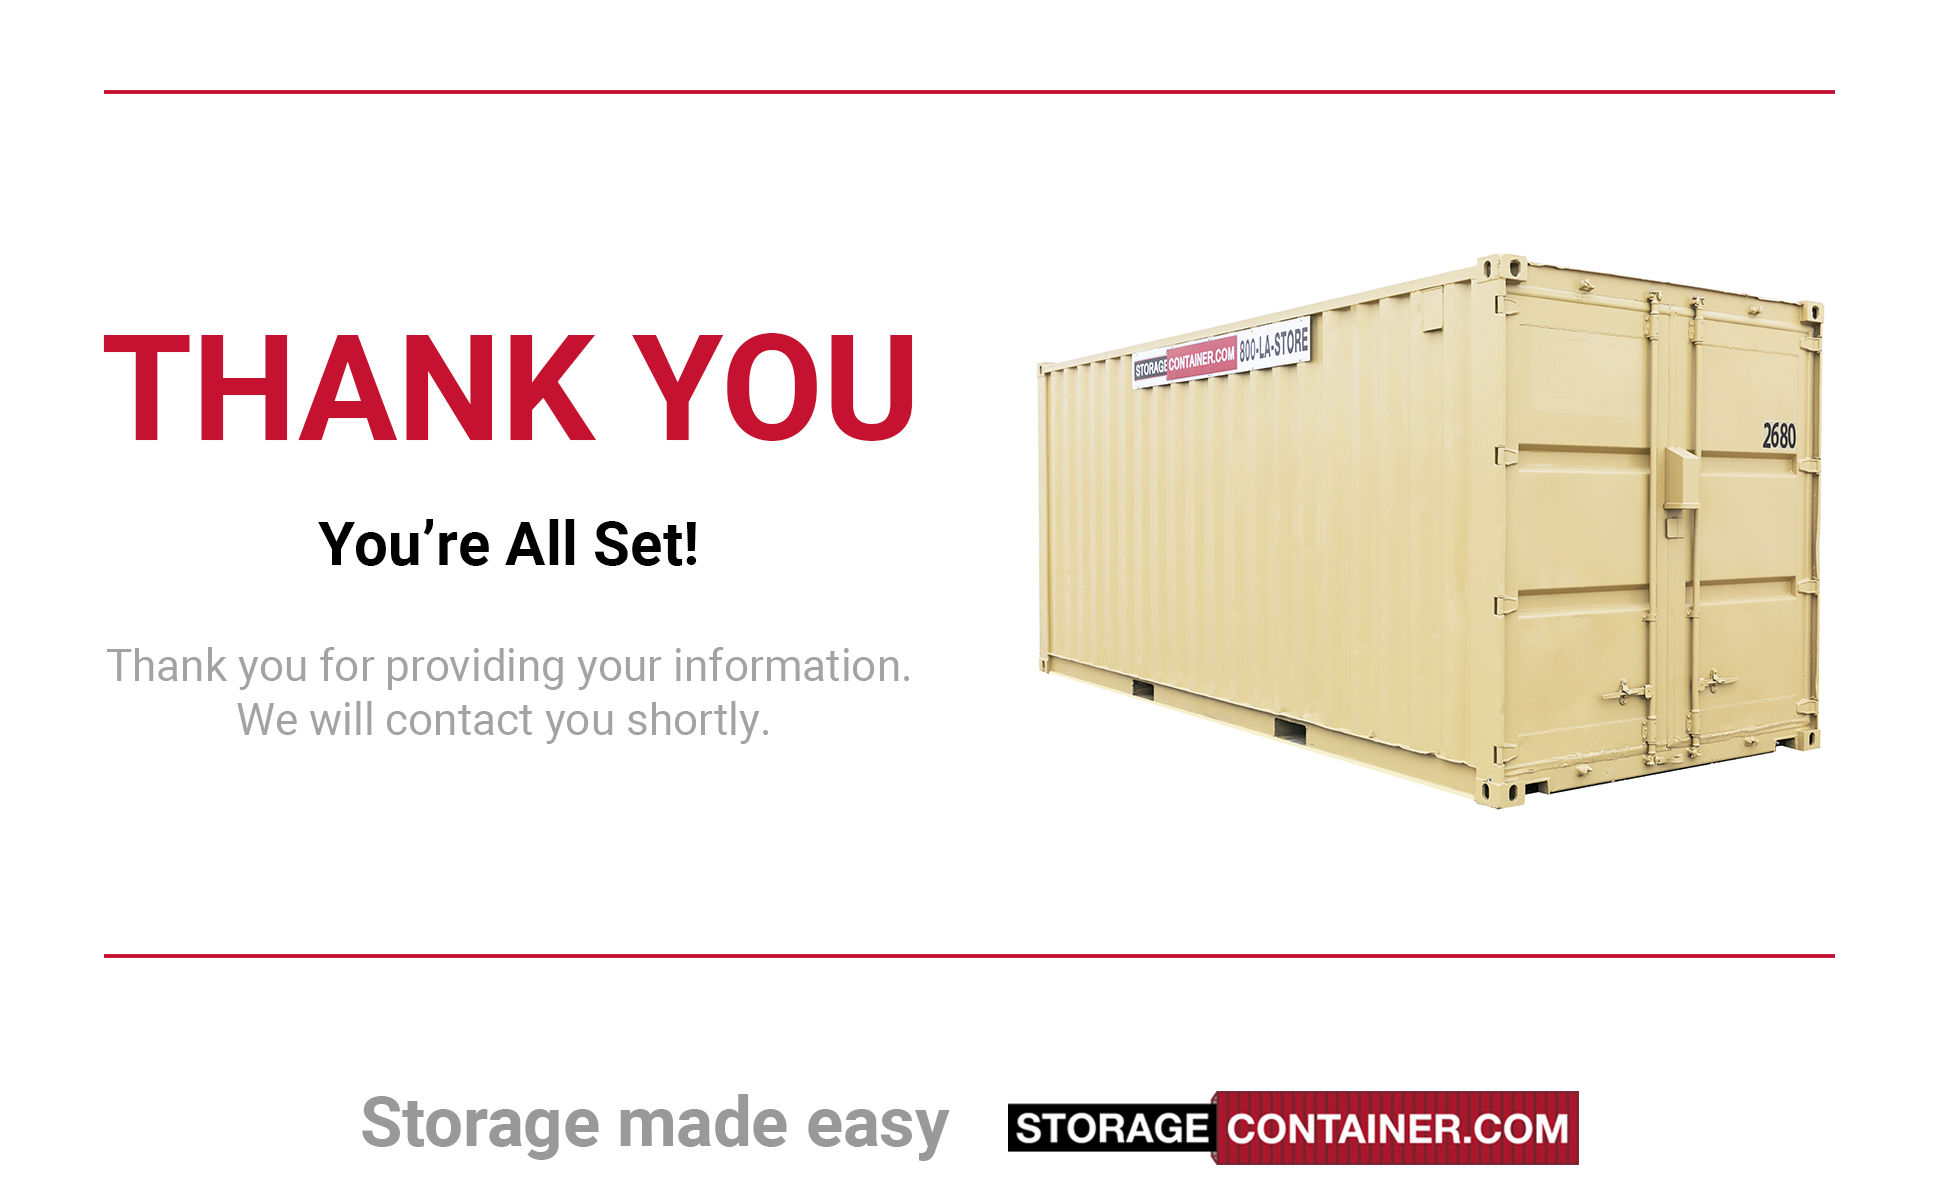 Storage Container Thank You for providing your information